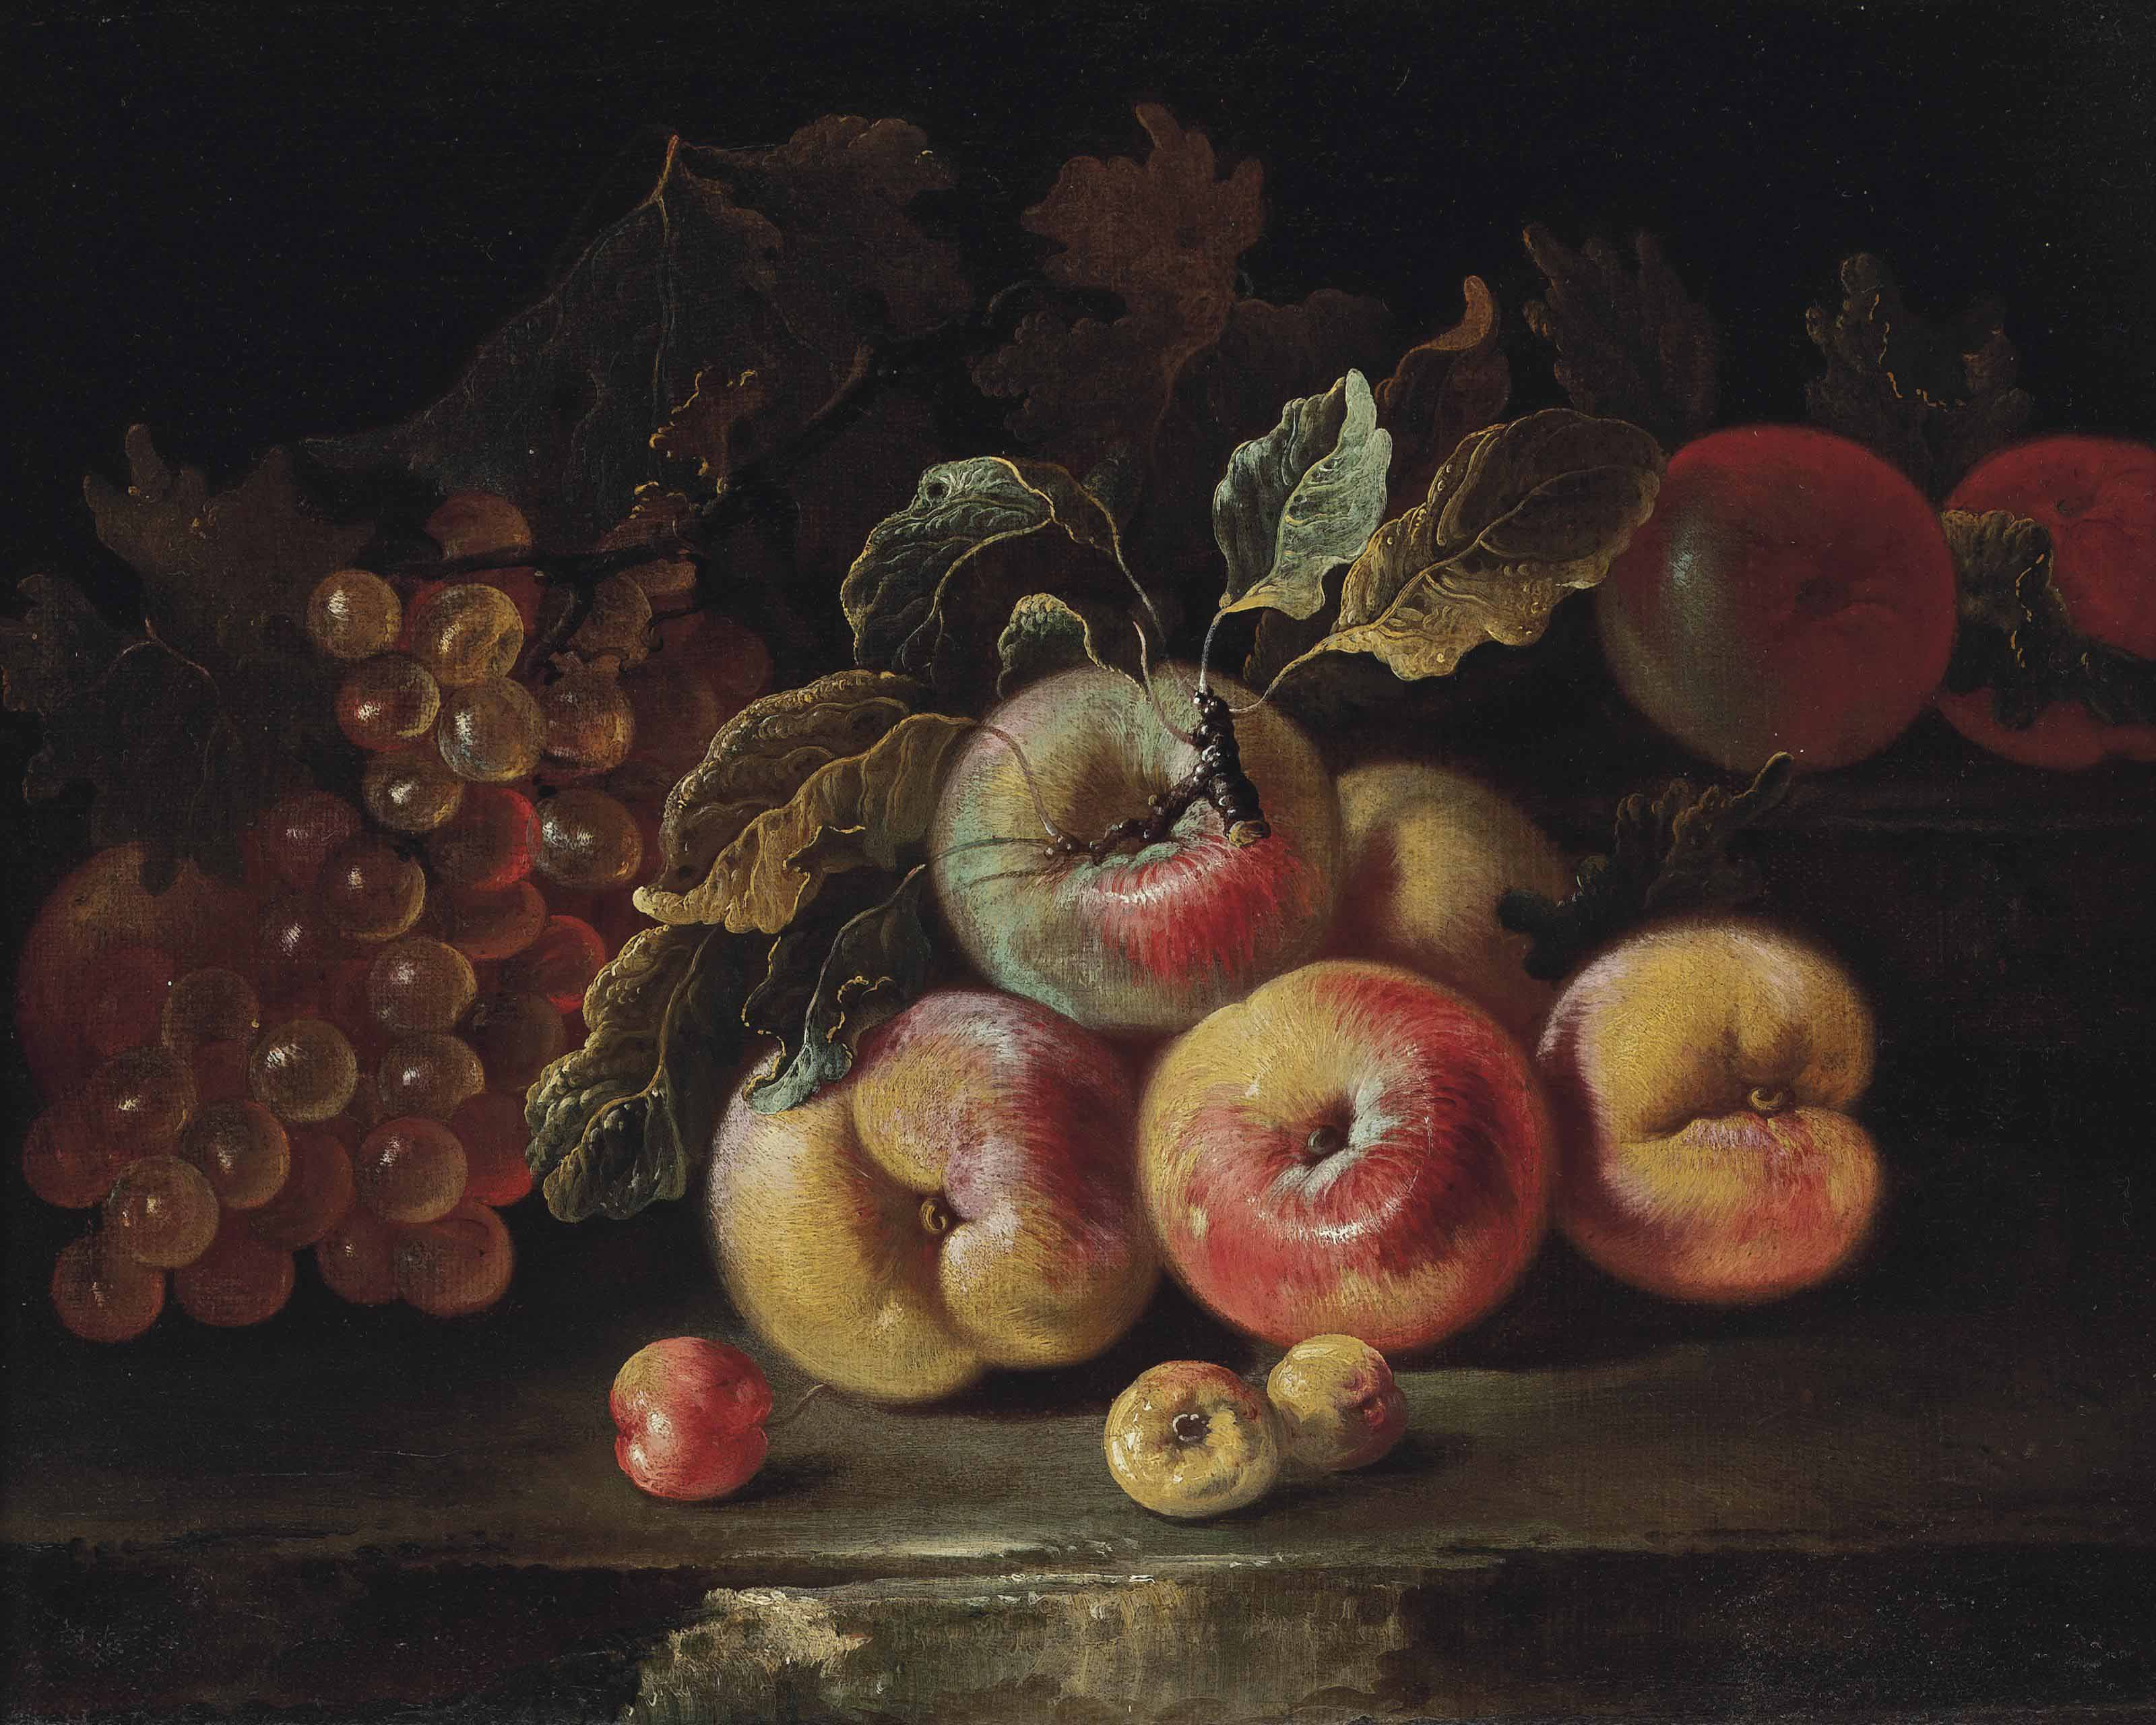 Peaches, grapes and plums on a stone ledge